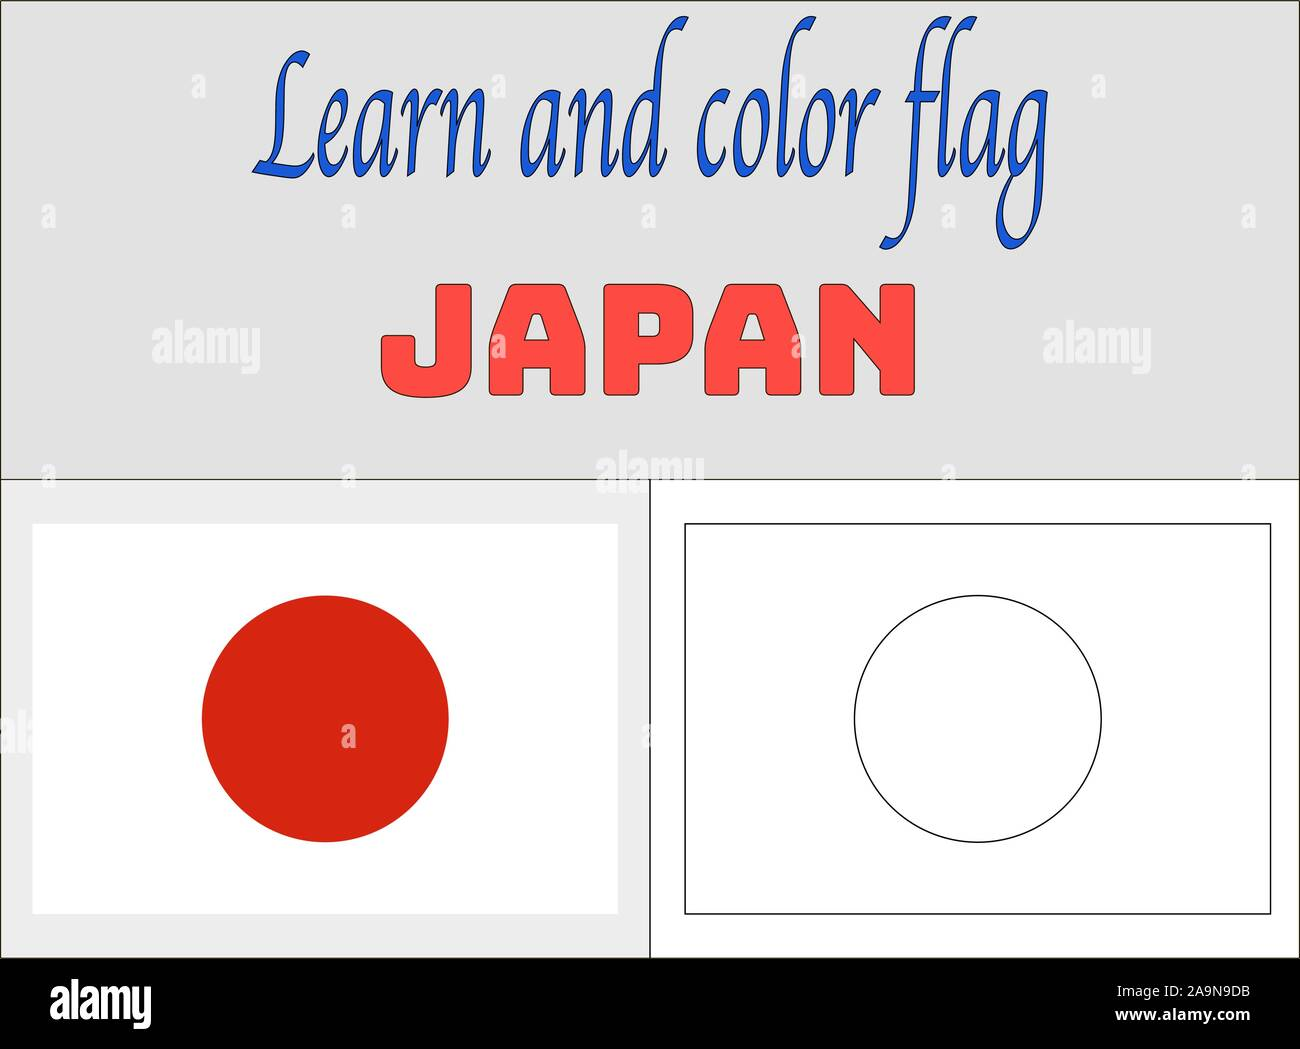 Japan National flag Coloring Book pages for Education and learning. original colors and proportion. vector illustration, from countries set. Stock Vector